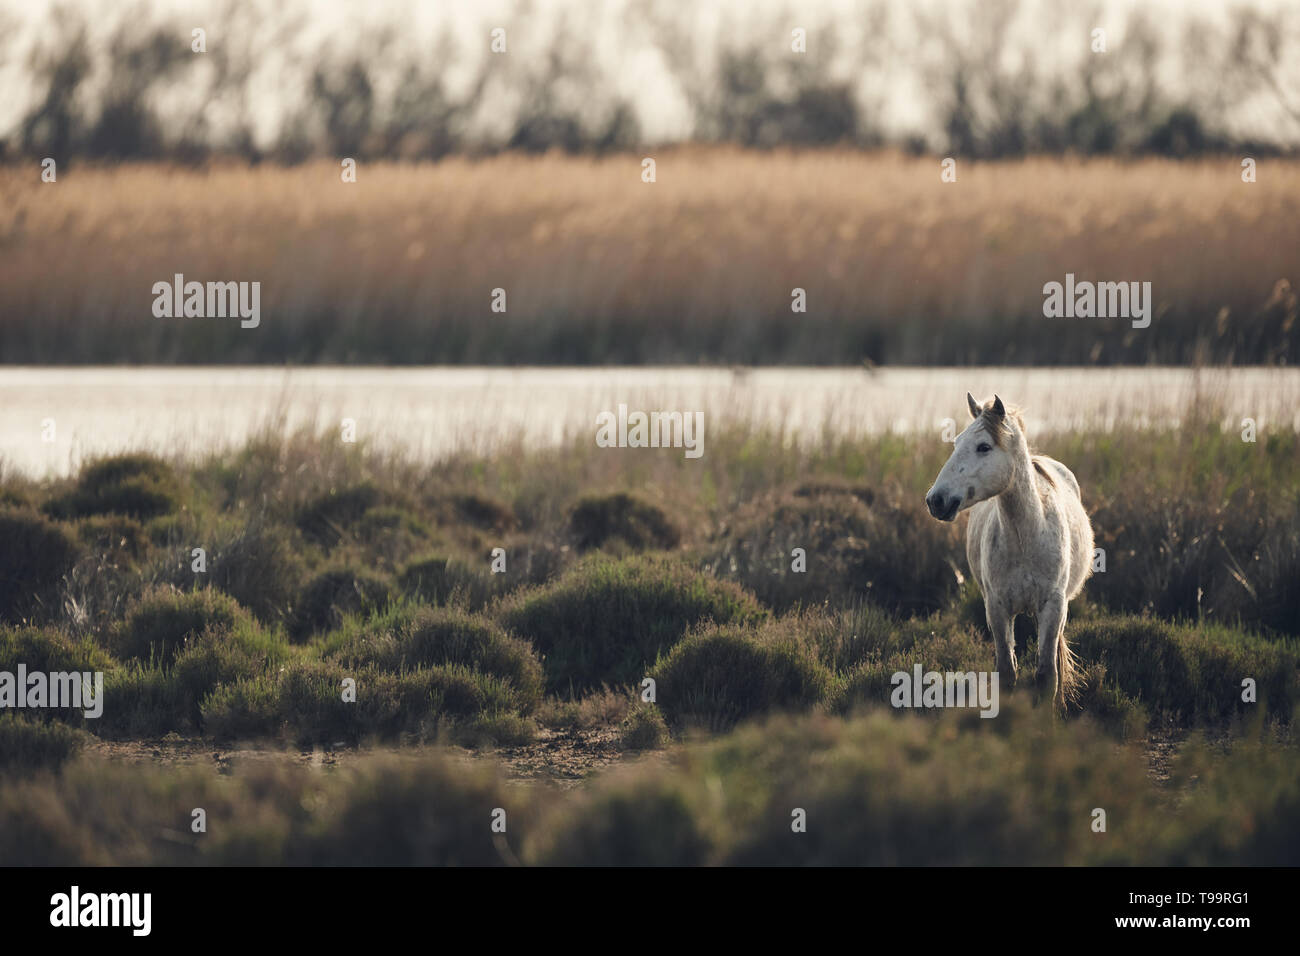 White horse of Camargue free in the swamp, matte style - Stock Image